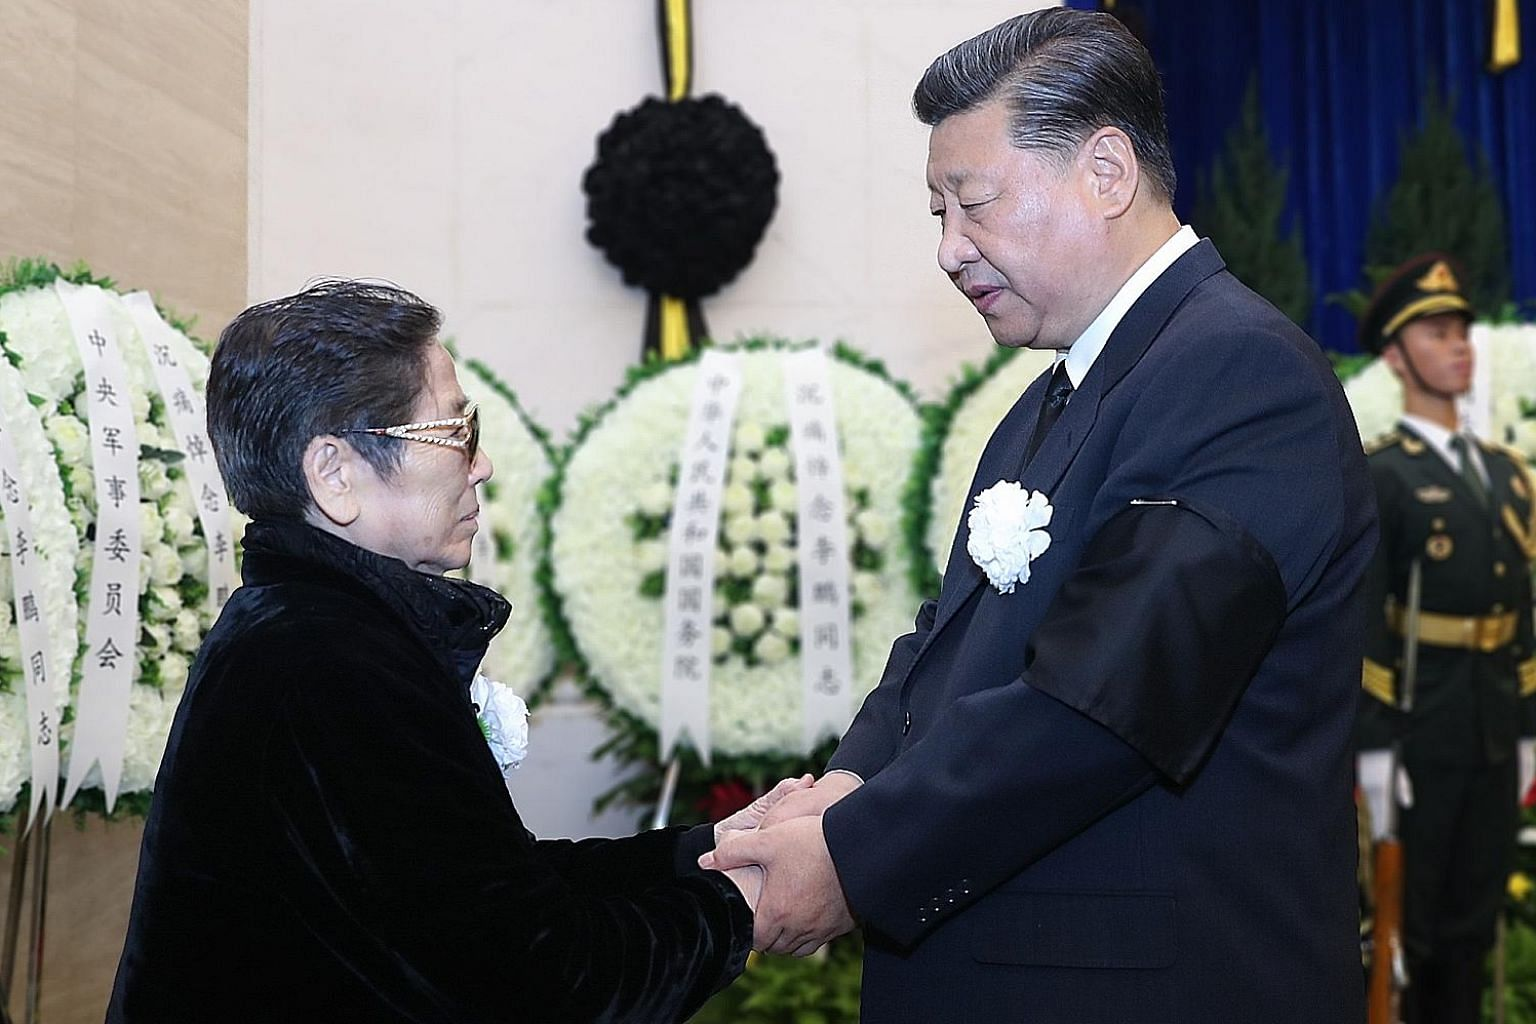 Far left: Then Premier Li Peng at a formal reception in Beijing in 1995. Left: Chinese President Xi Jinping expressing his condolences to Mr Li's family member in Beijing yesterday.